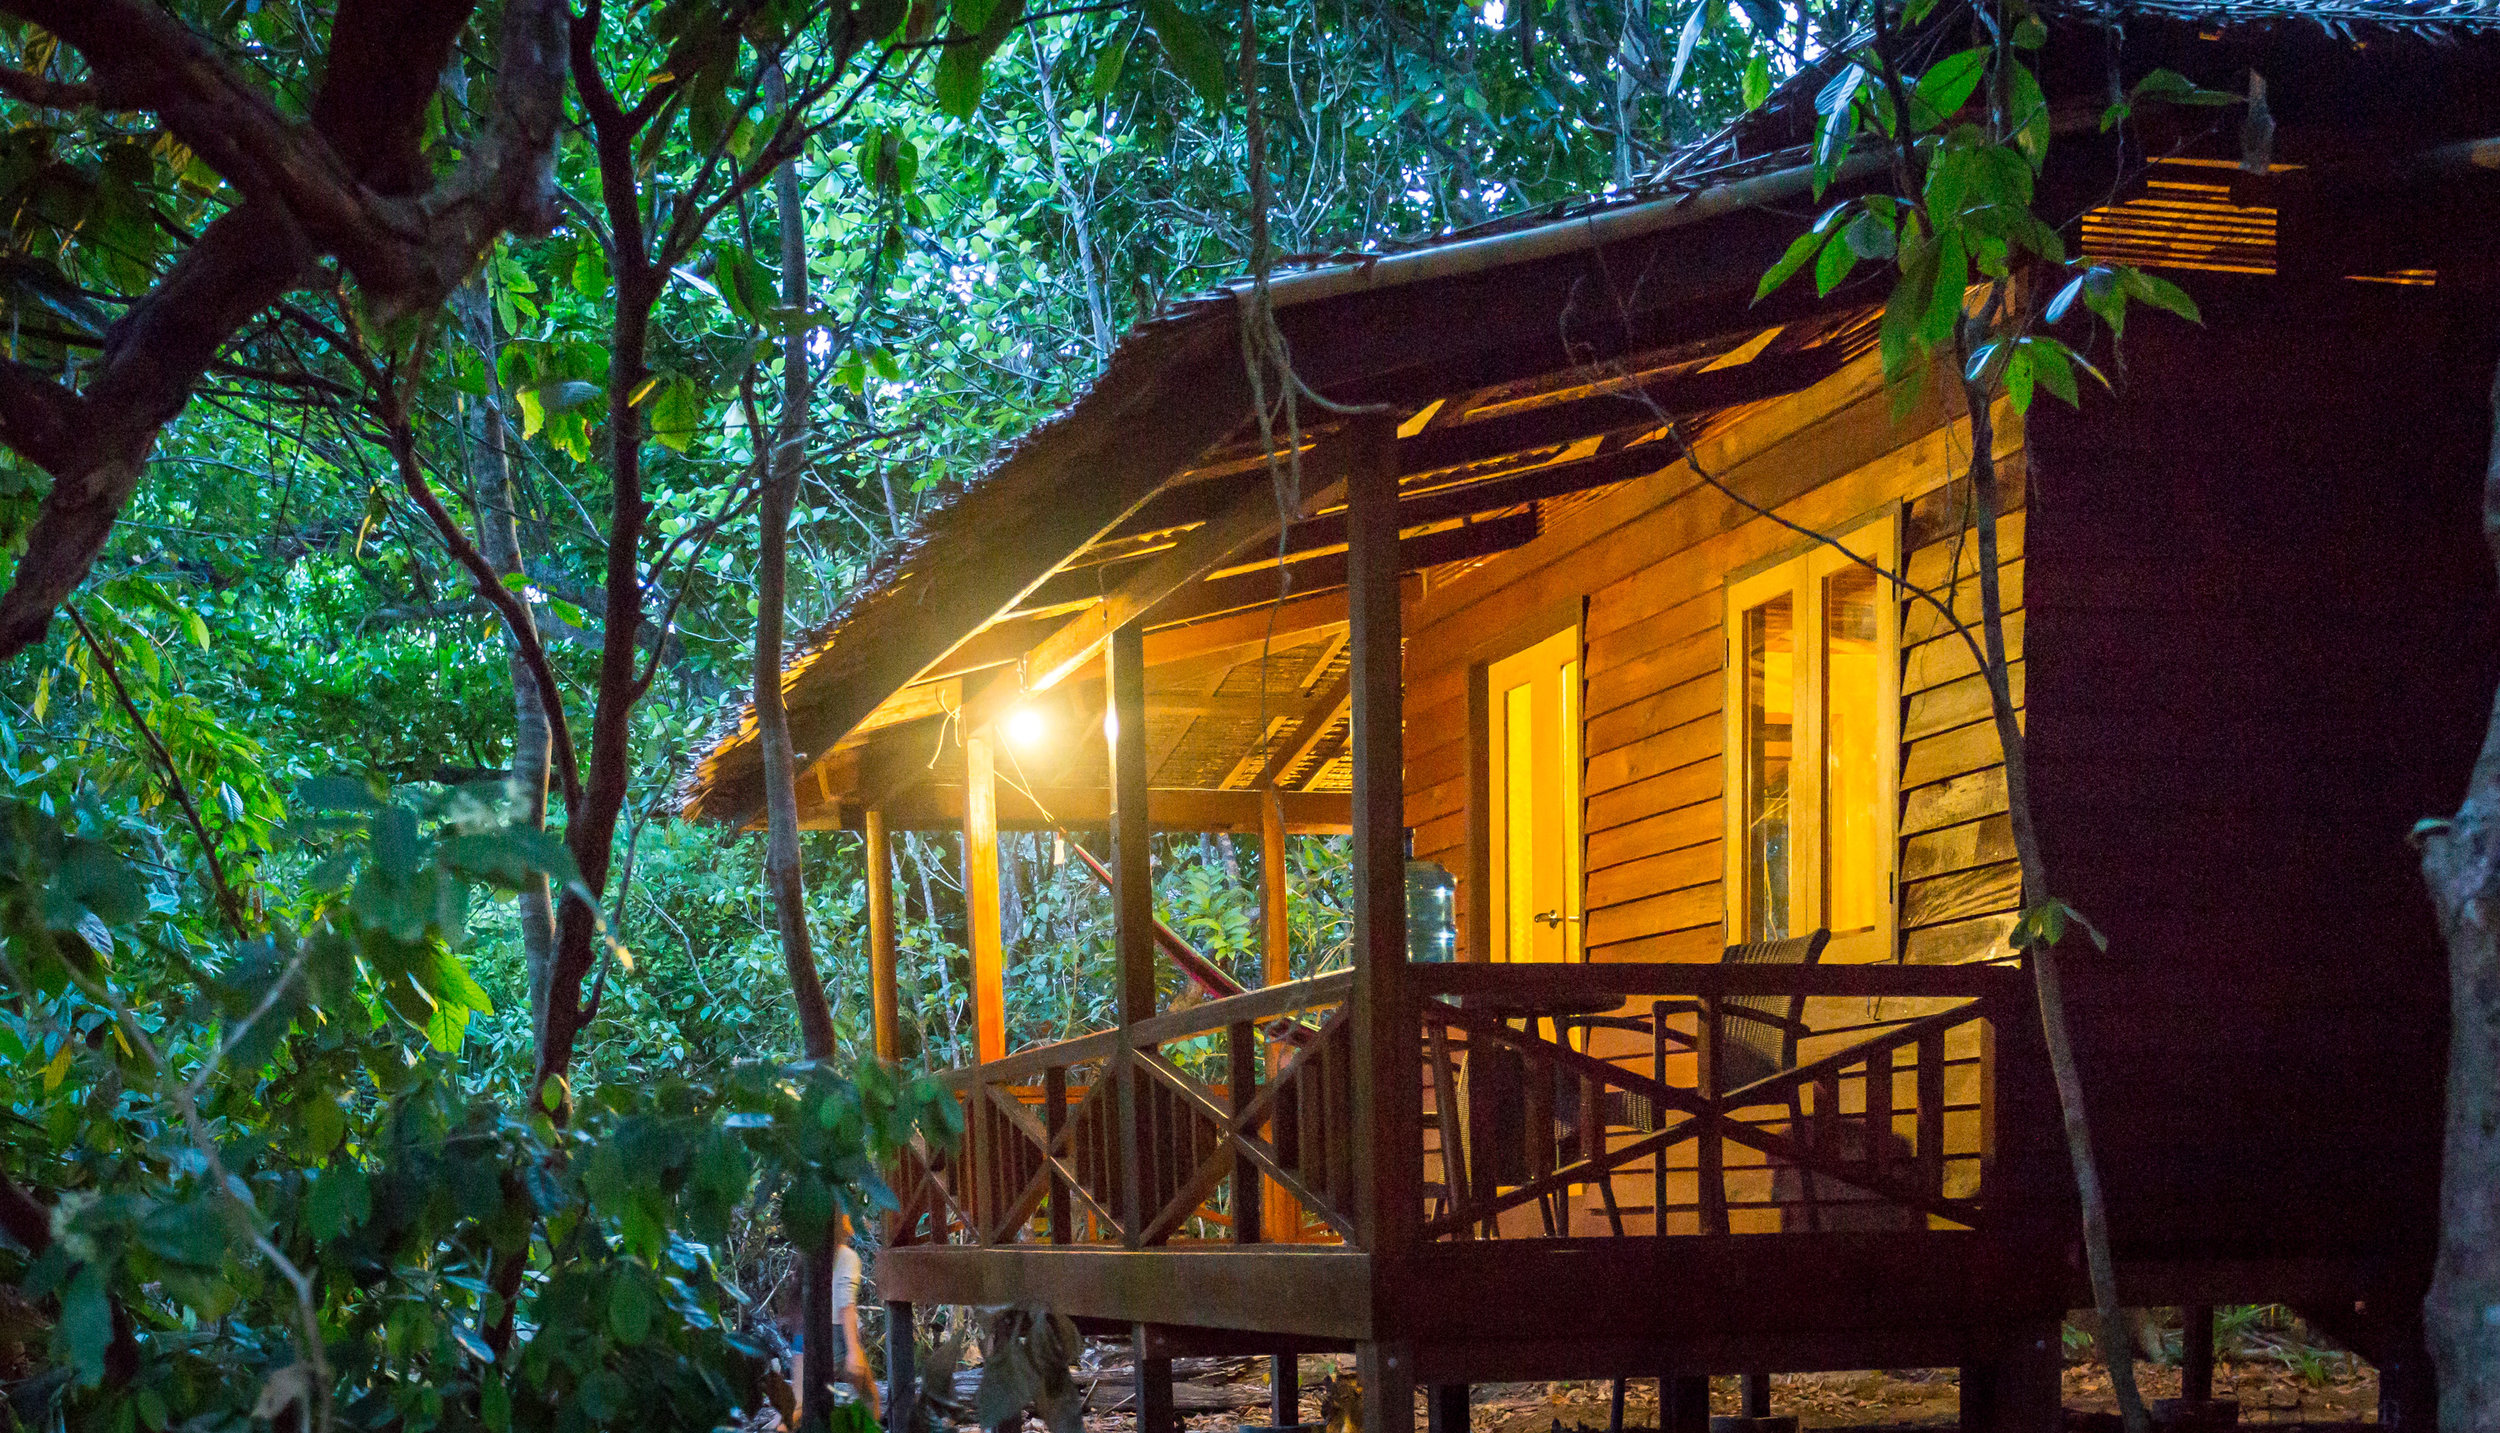 Boulder Bay Eco Resort - An Eco-Resort with a minimal human footprint in the Mergui Archipelago. Sustainable tourism at its best. Featuring Myanmar's finest,exotic, secluded beaches in natural settings.